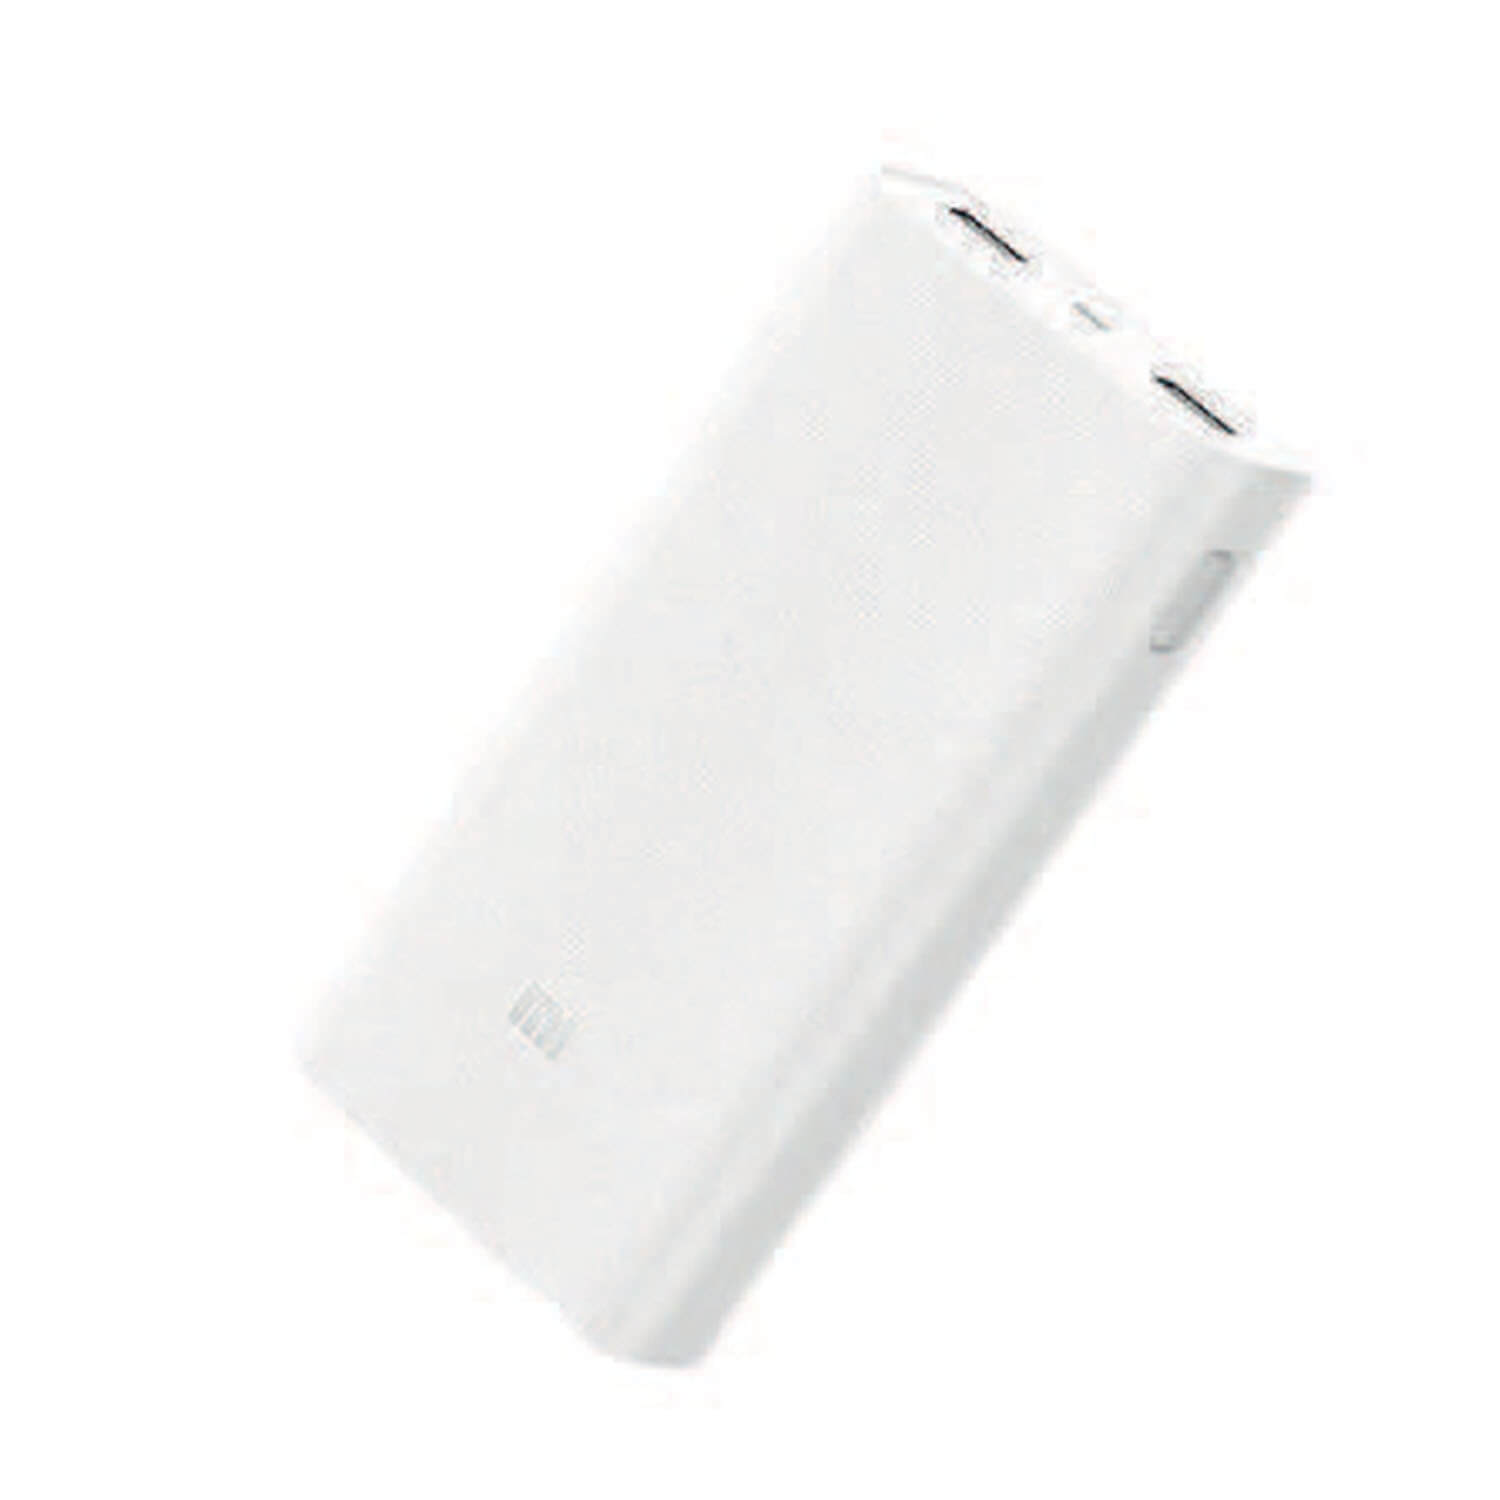 Xiaomi 20.000mAh 2C Powerbank